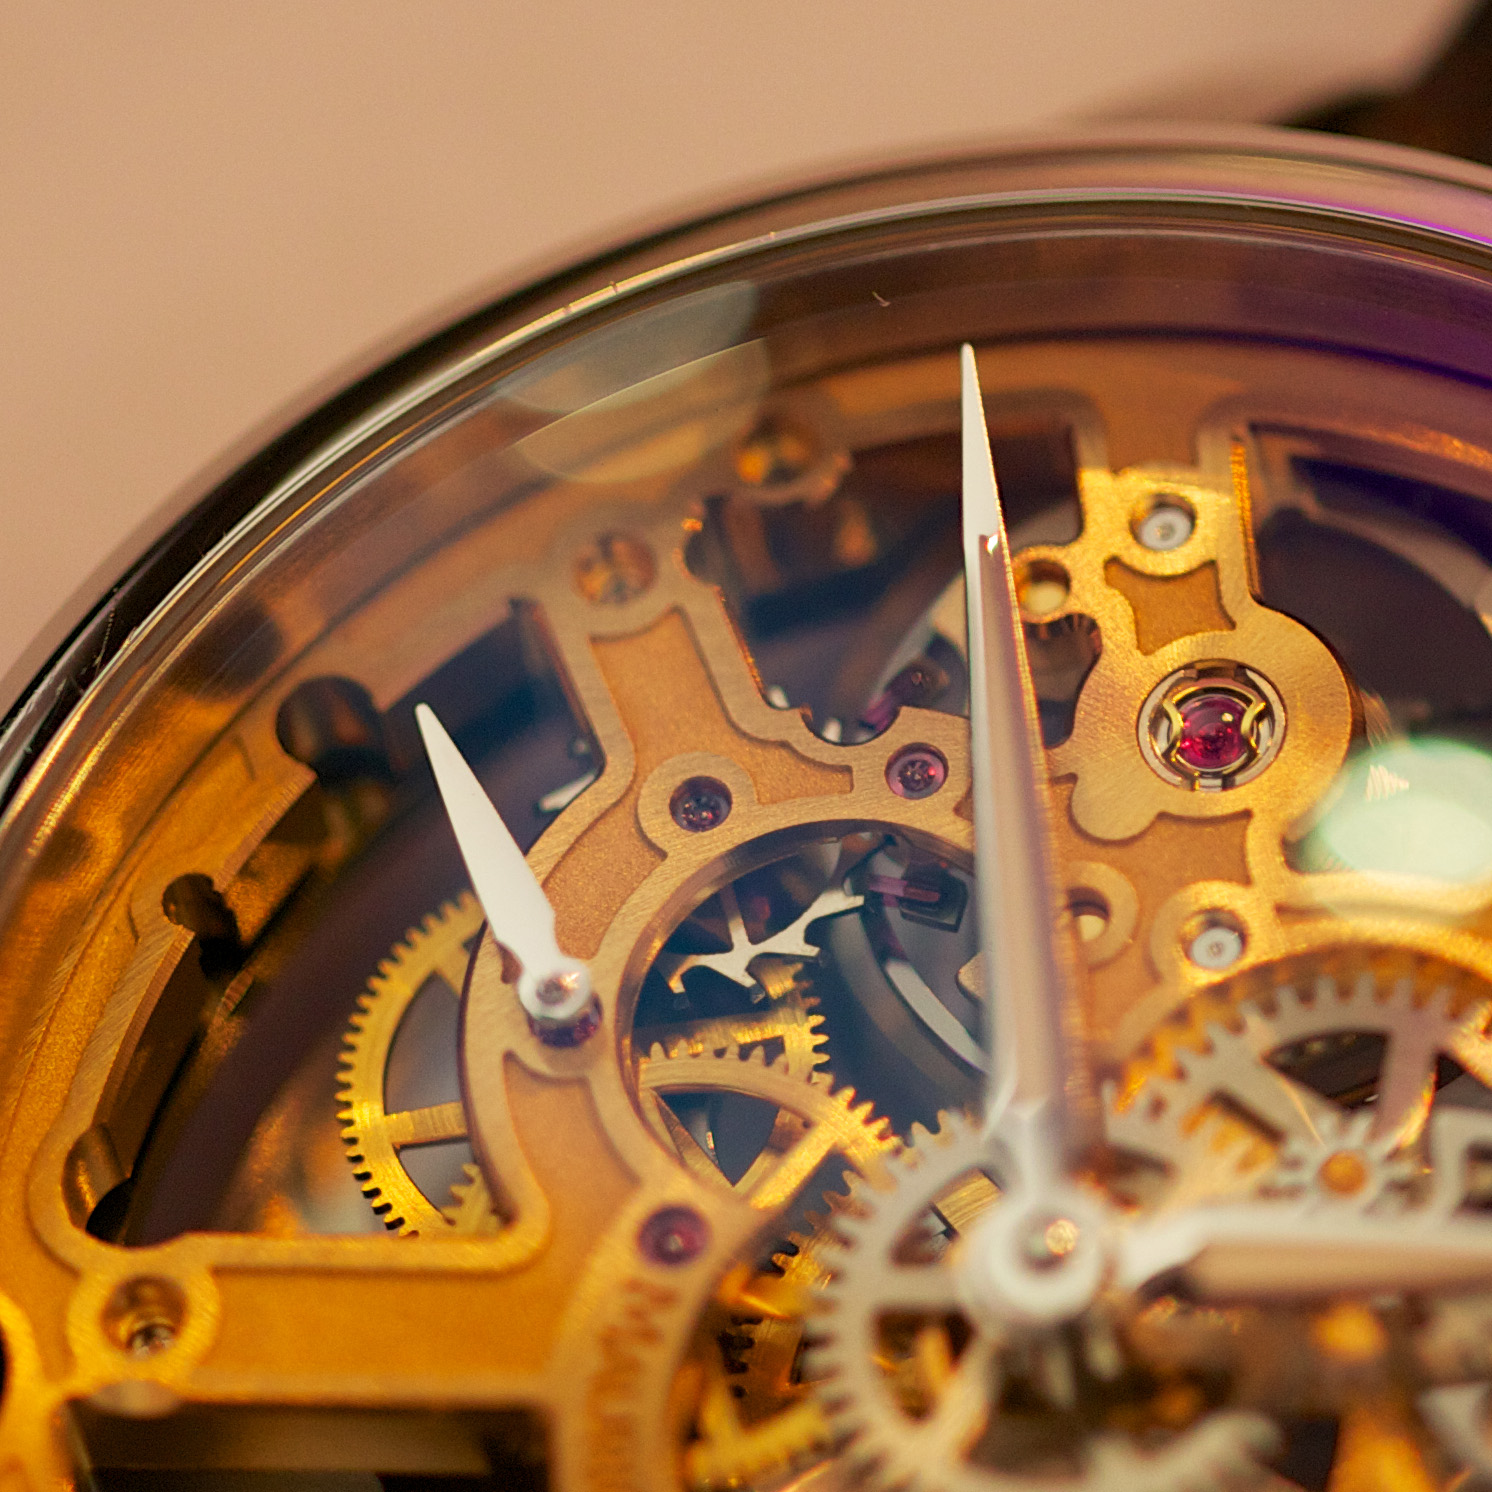 Maurice Lacroix Masterpiece Squelette - Dial Close-up